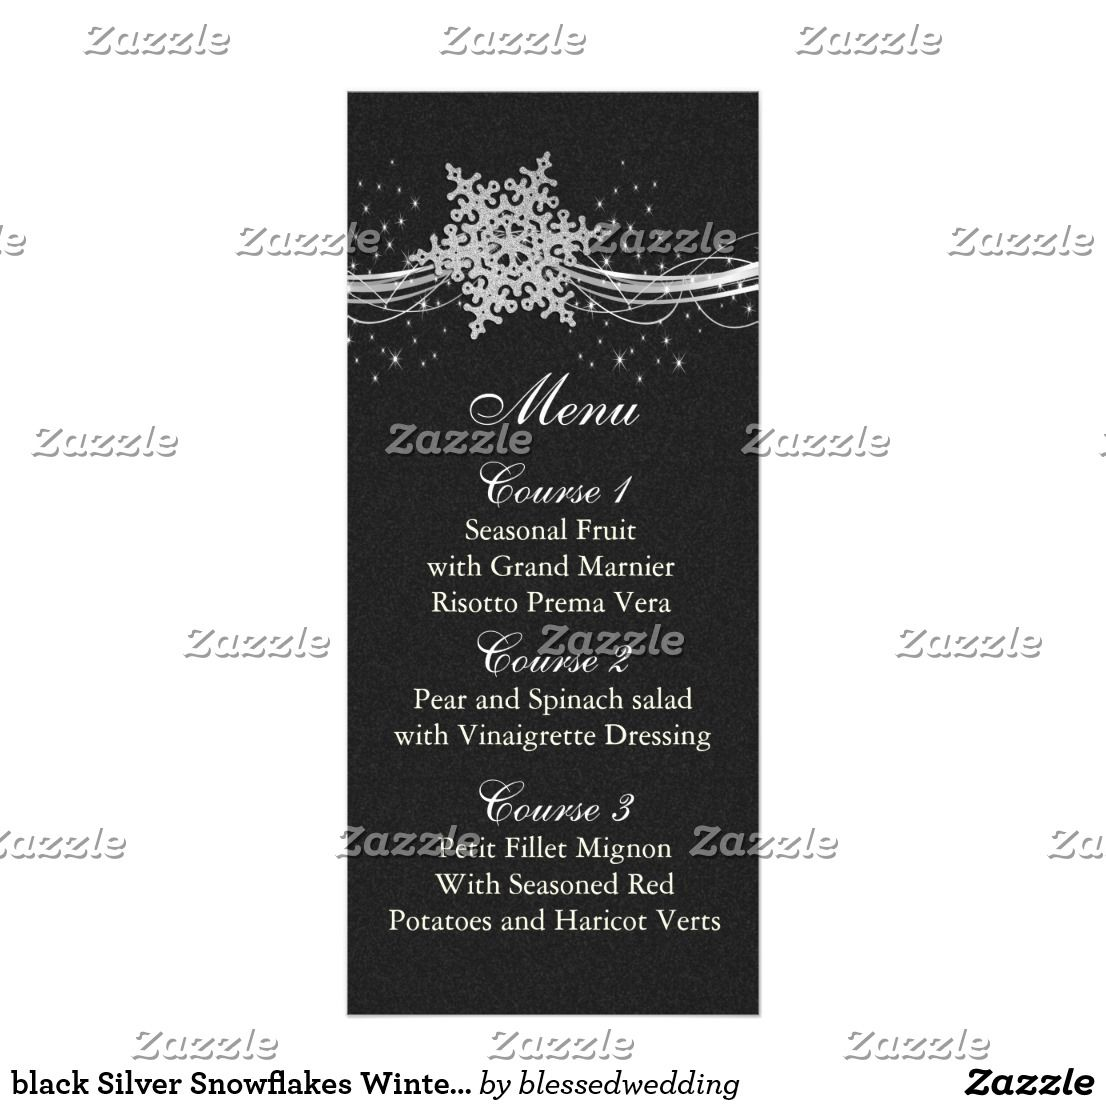 Black Silver Snowflakes Winter Wedding Menu Cards Wedding Menu